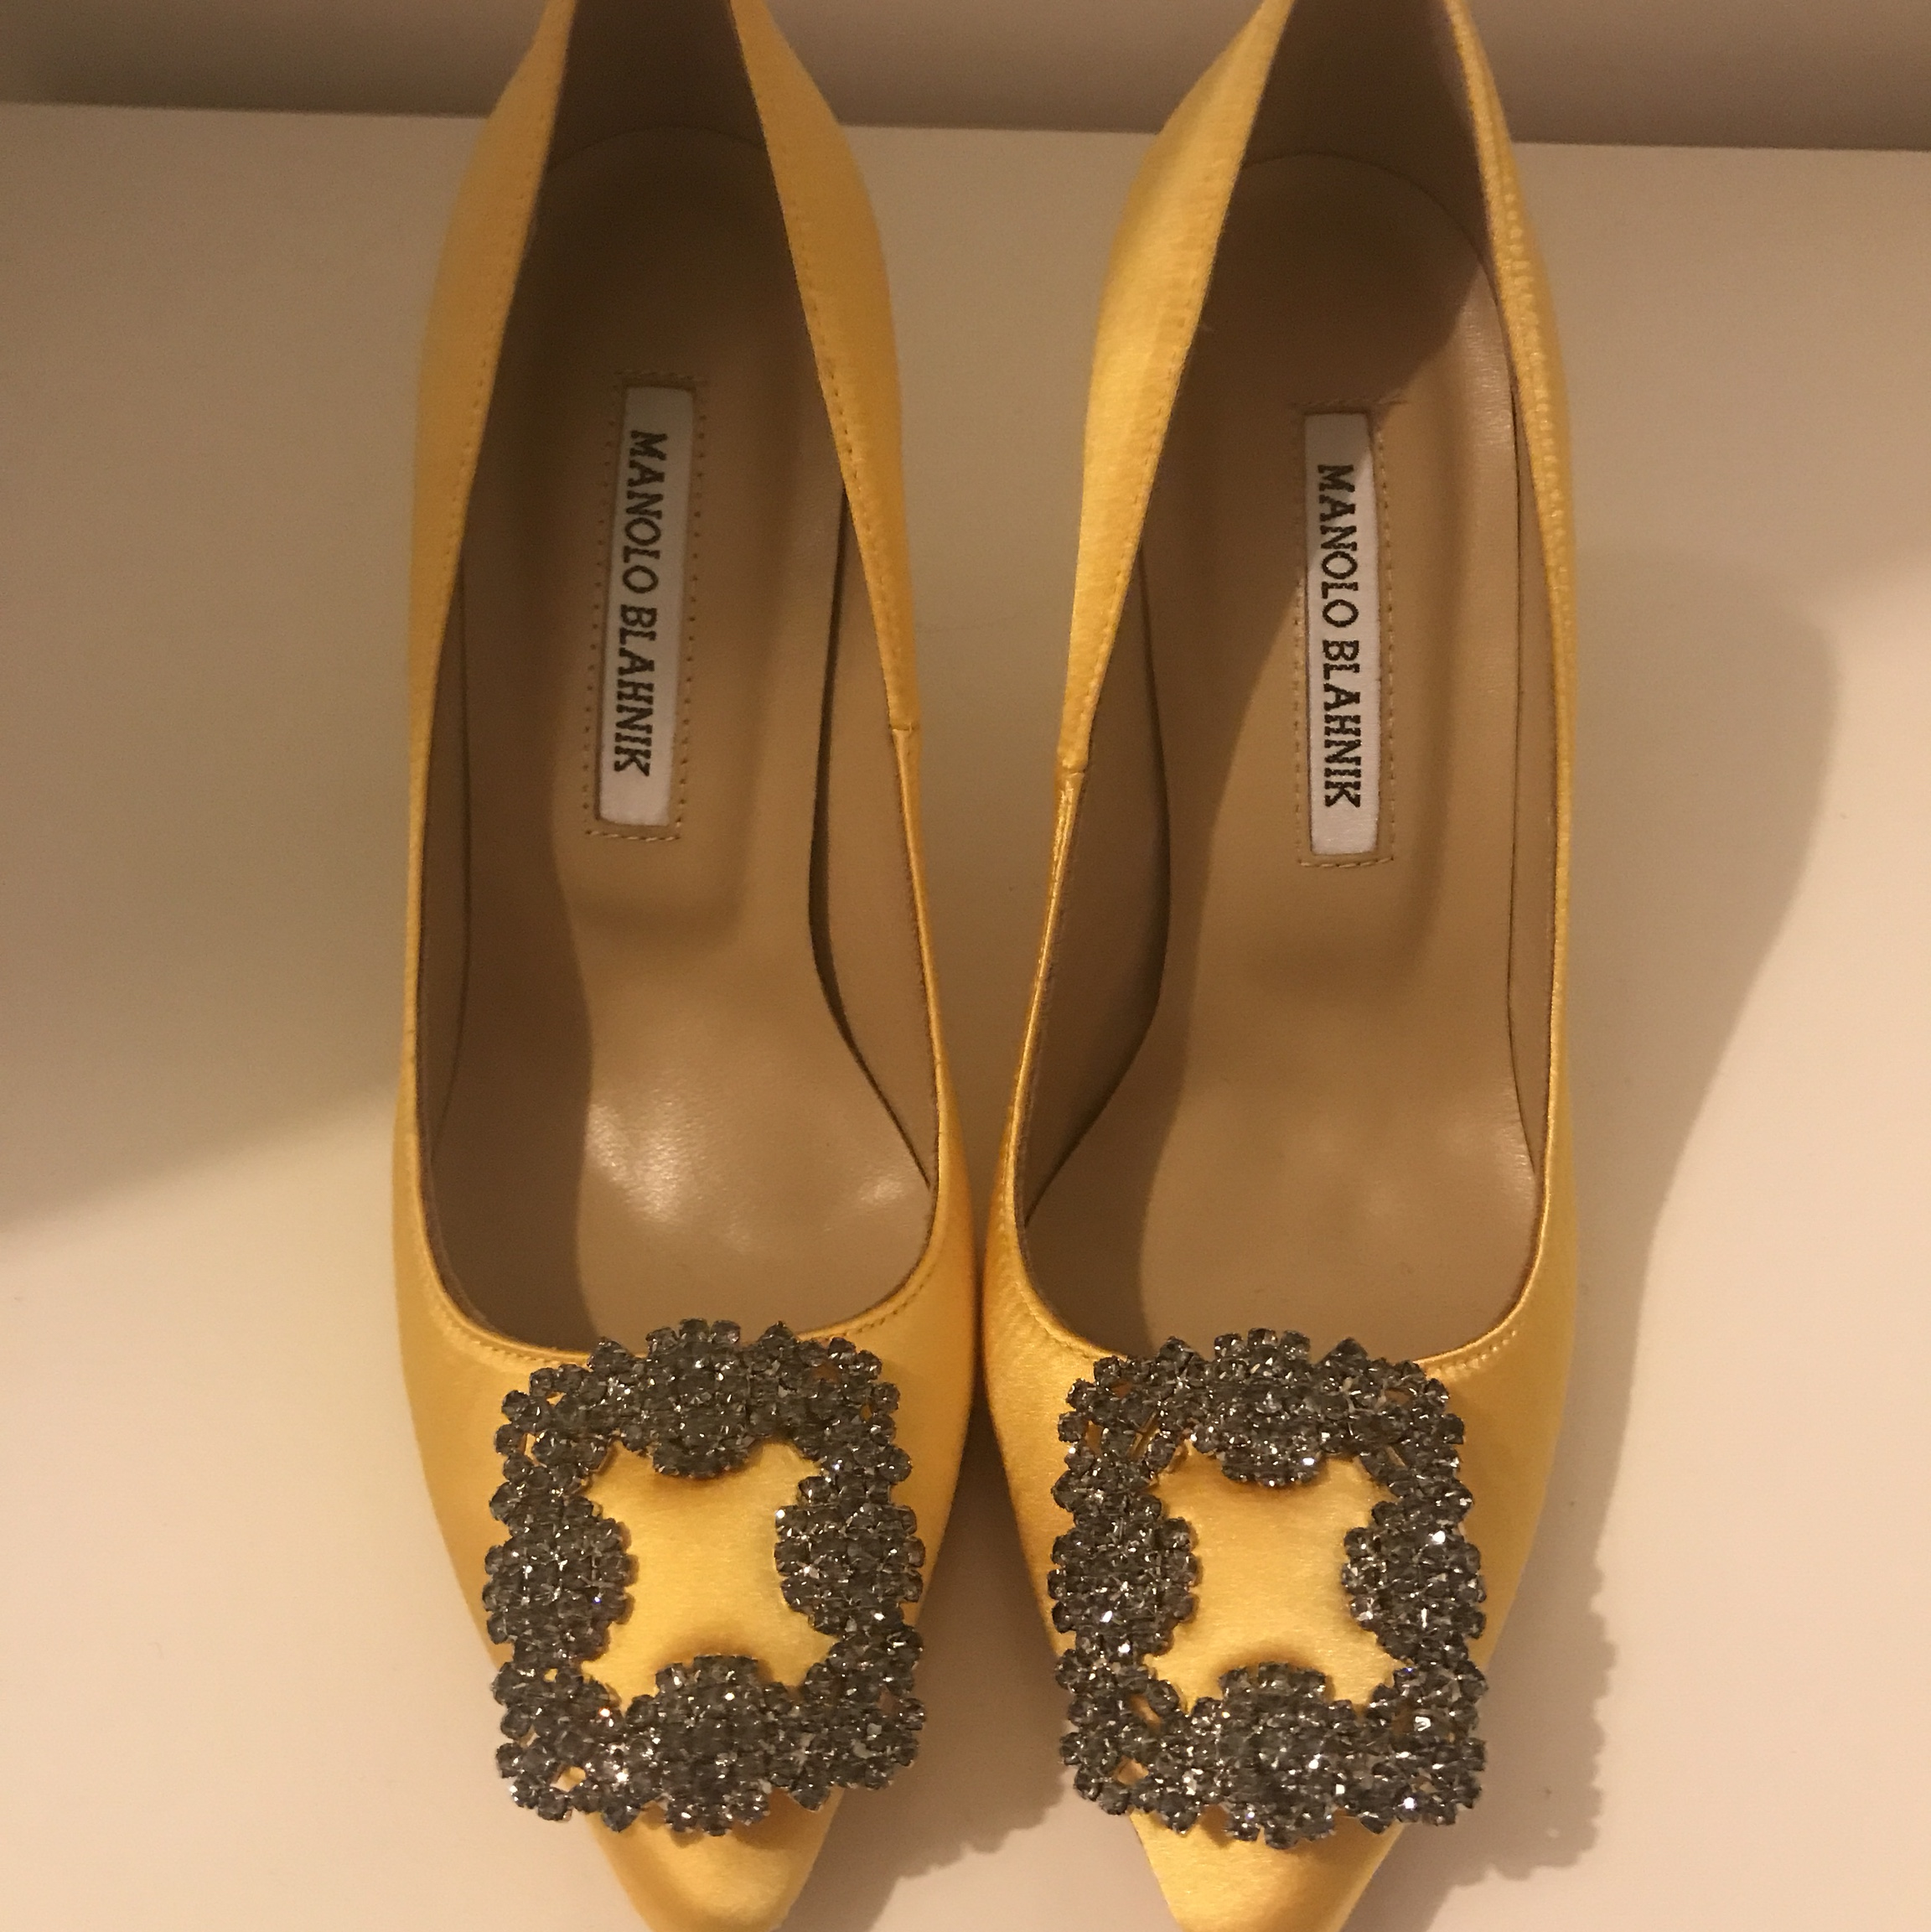 37361ab2dbcc4 Manolo Blahnik Size 4 Yellow Hangisi Good condition - Depop